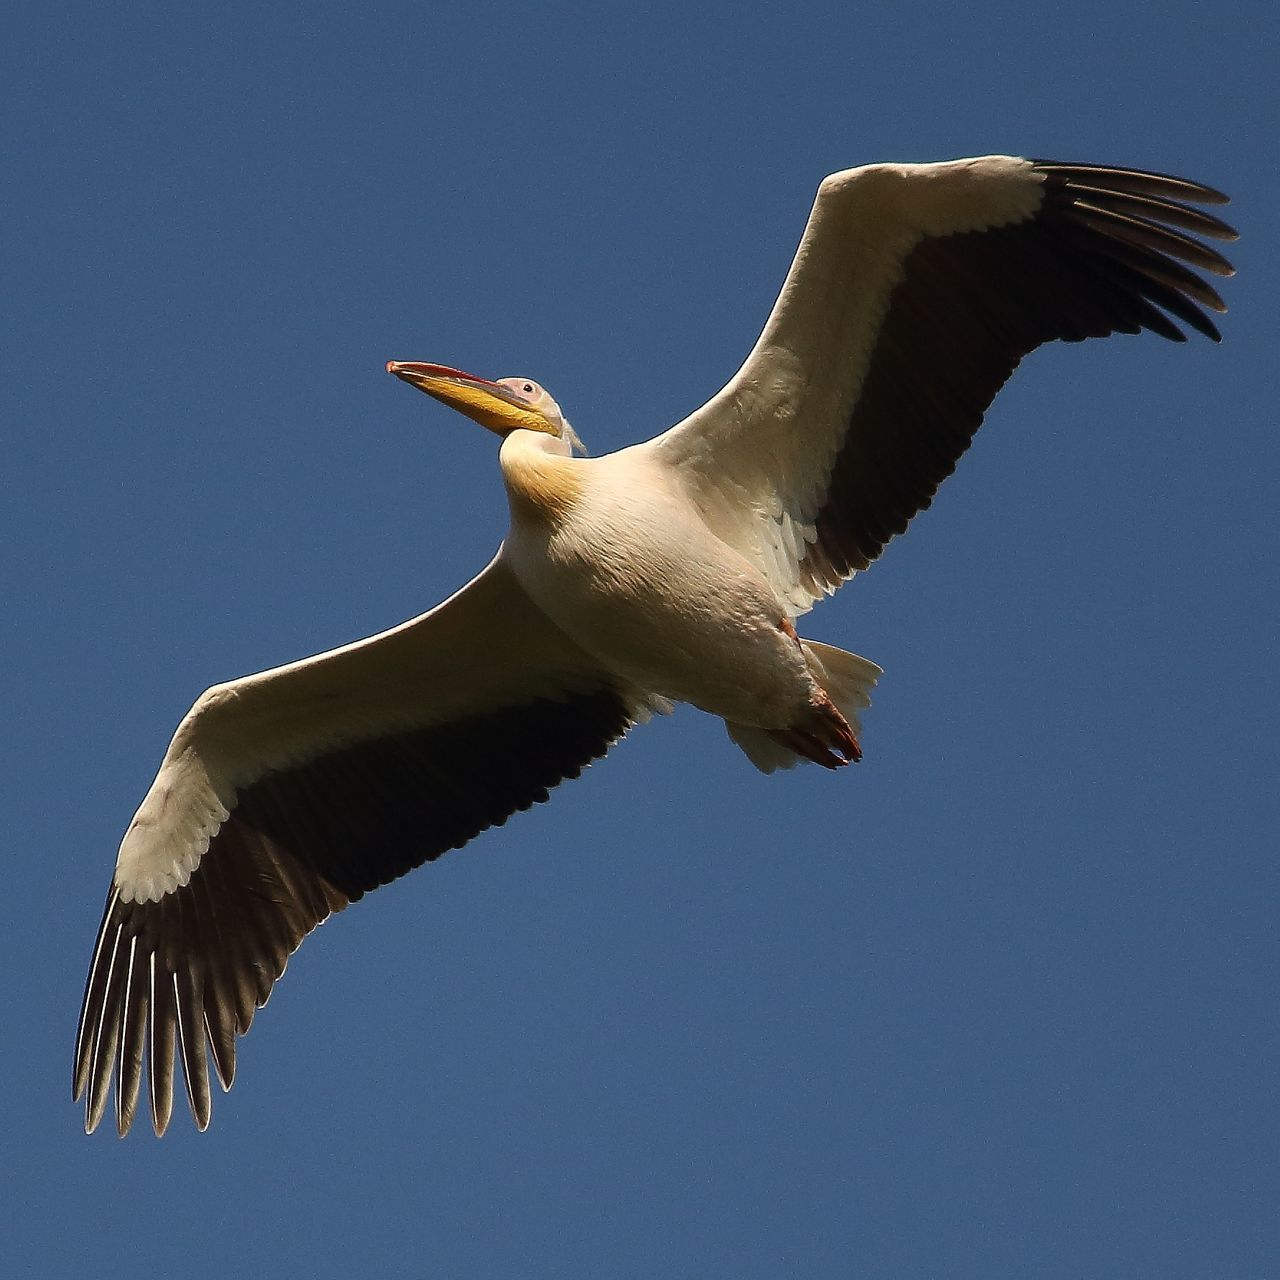 spread wings, flying, bird, one animal, animals in the wild, animal themes, mid-air, clear sky, low angle view, animal wildlife, day, no people, nature, outdoors, sky, close-up